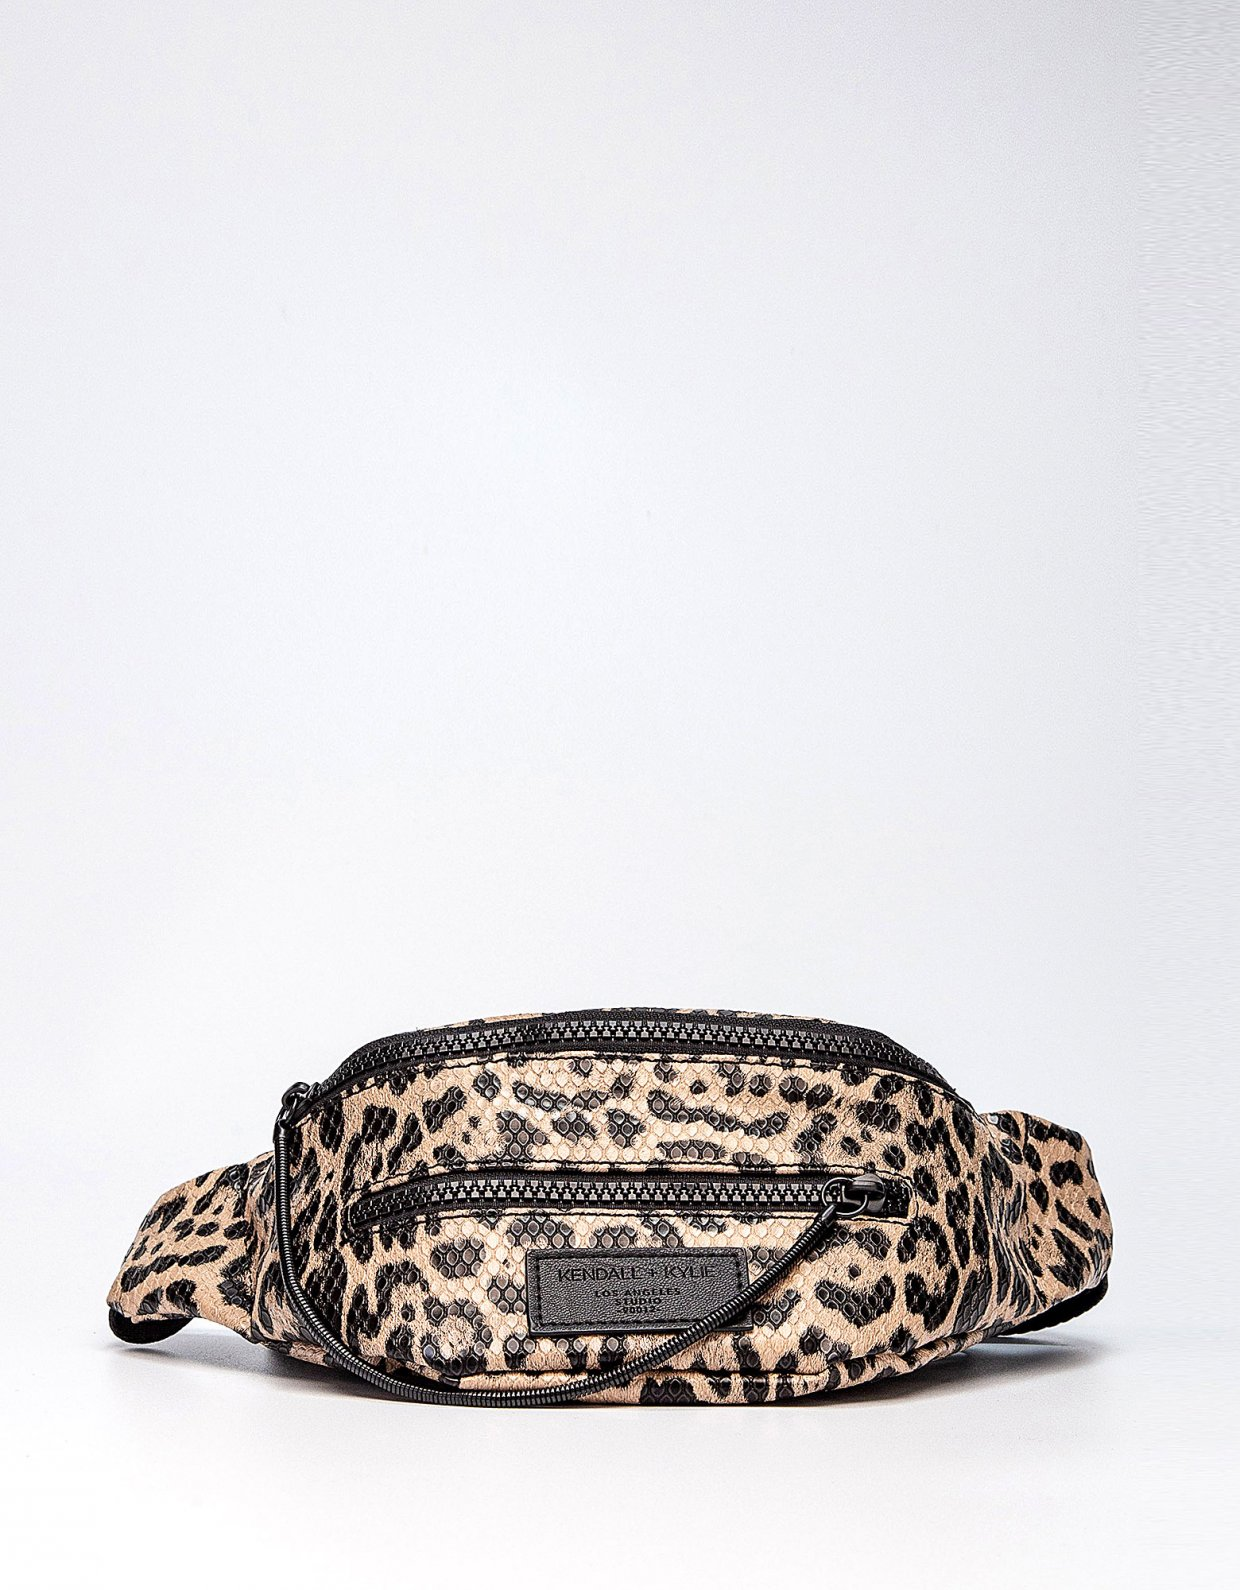 Kendall + Kylie Carina fanny pack leopard